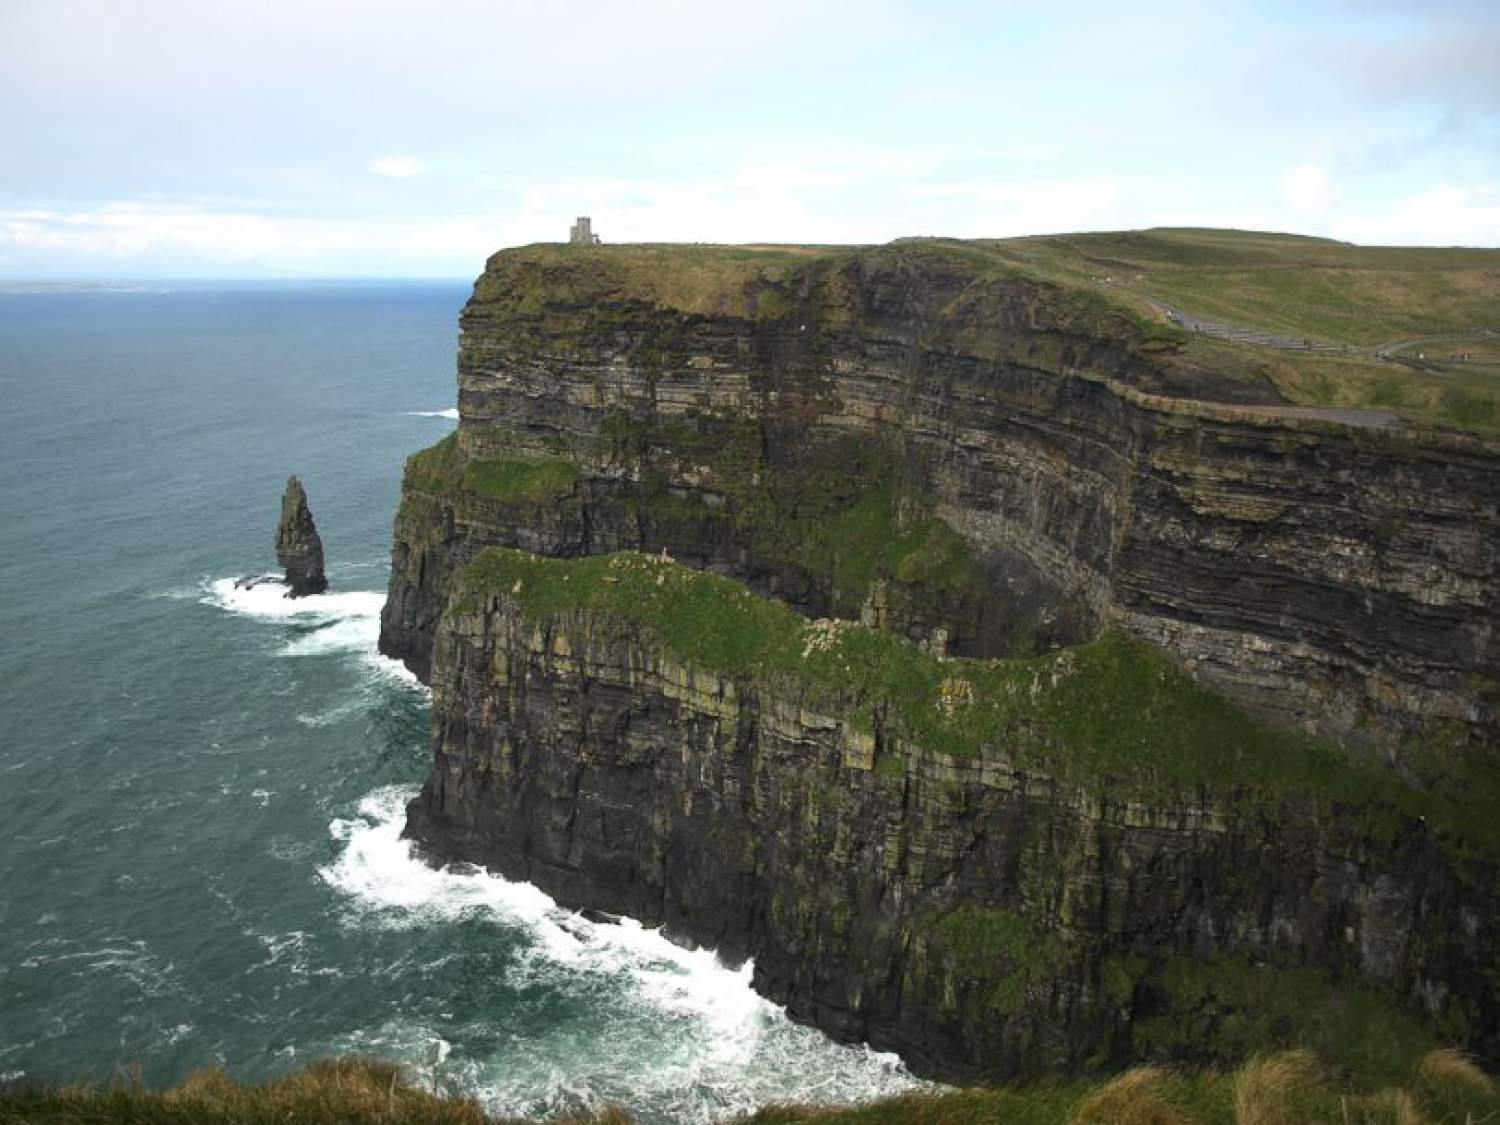 Falaises Moher, Irlande